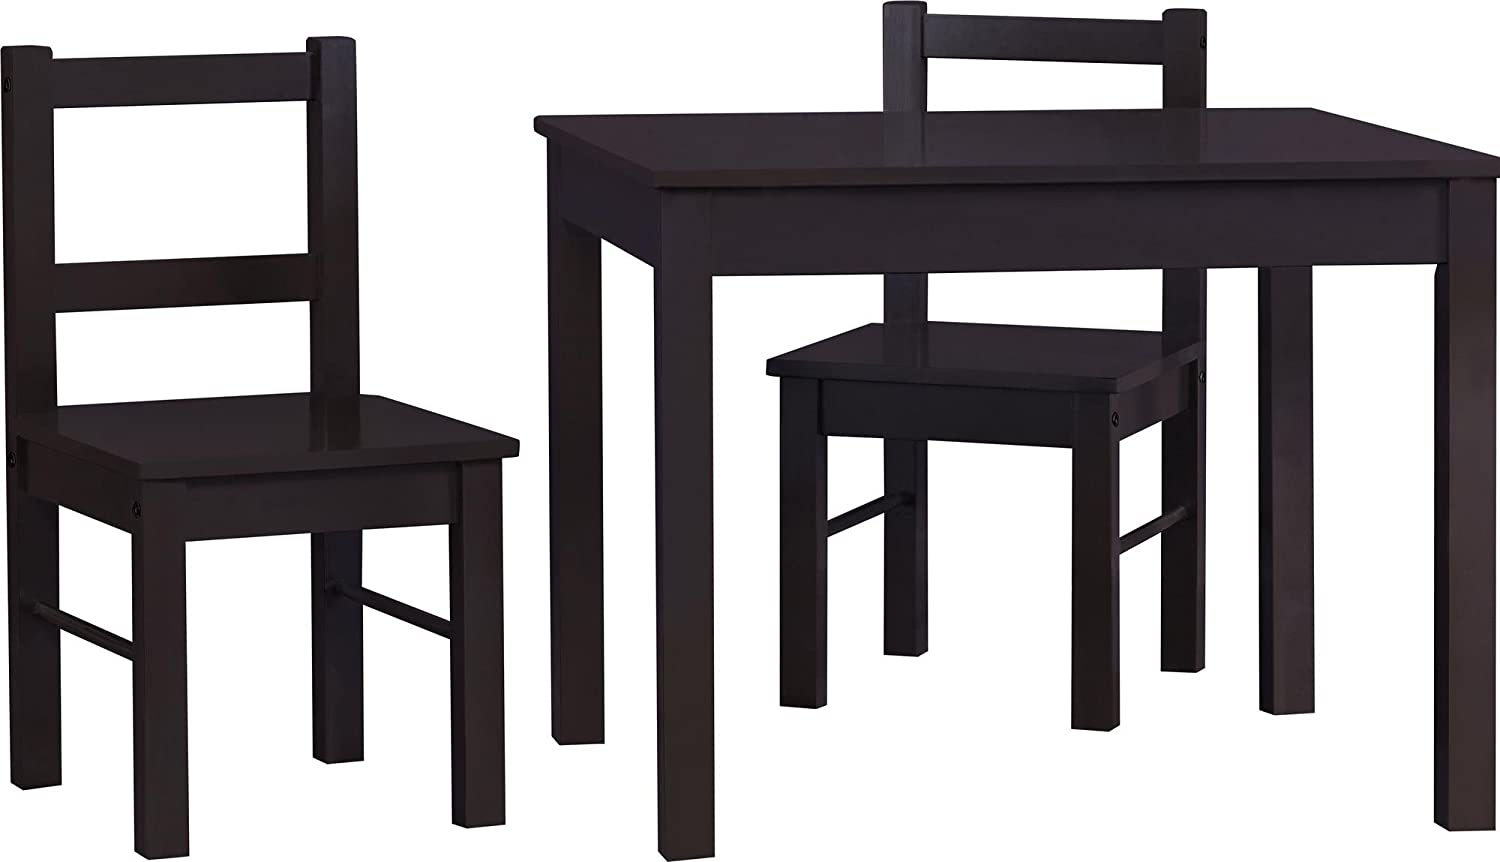 Ameriwood Home Hazel Kid's Table and Chairs Set, Espresso Dorel Home Furnishings 5827396PCOM